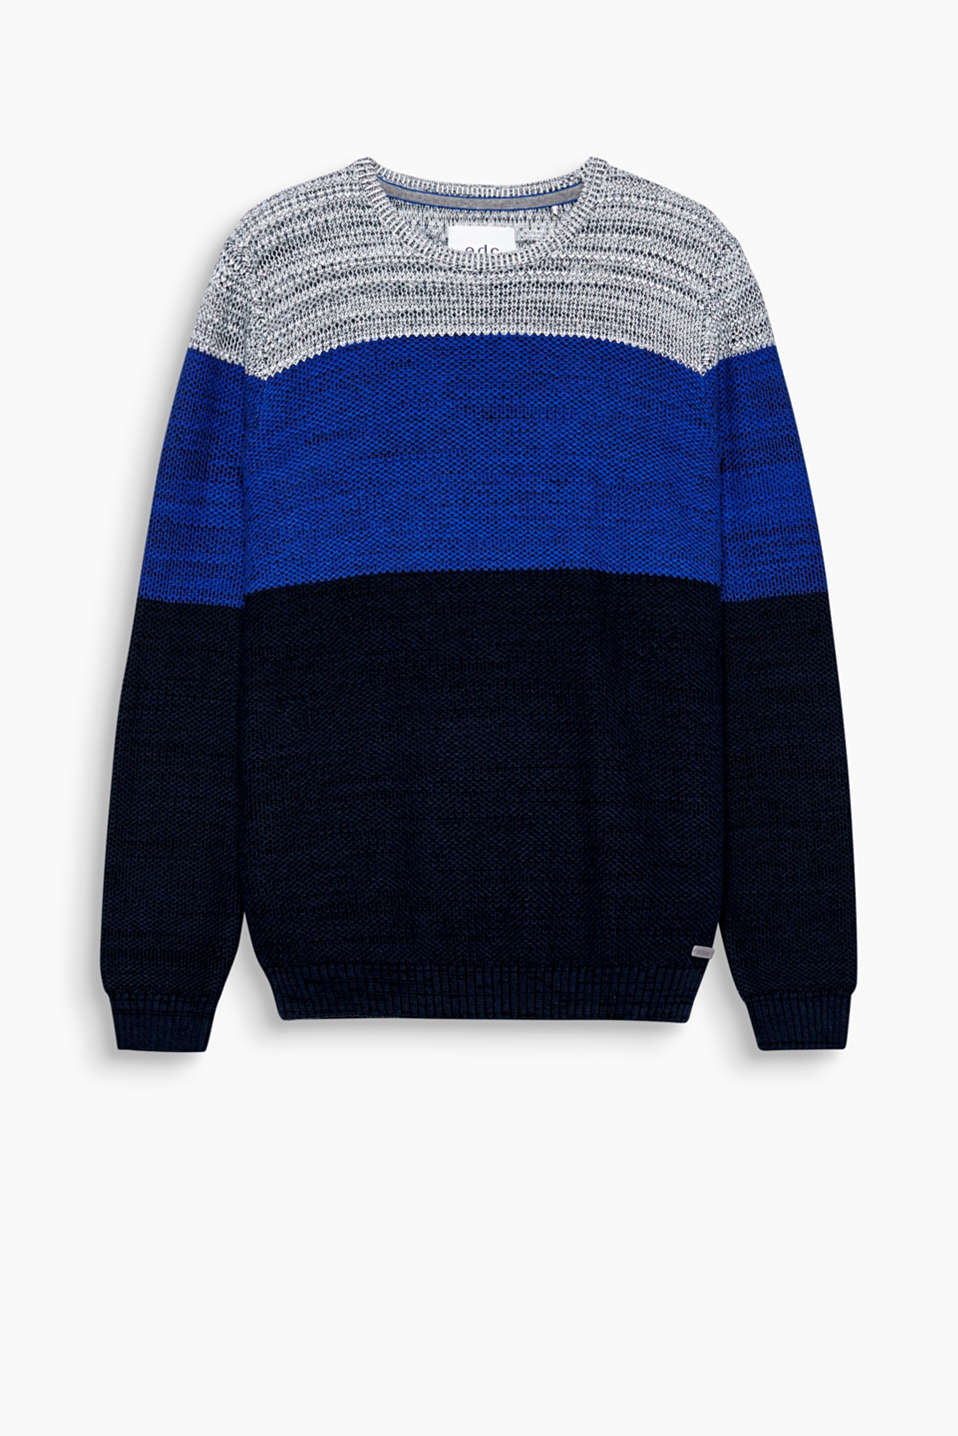 Block stripes in distinctive colours make this jumper in textured knit a favourite of the season!